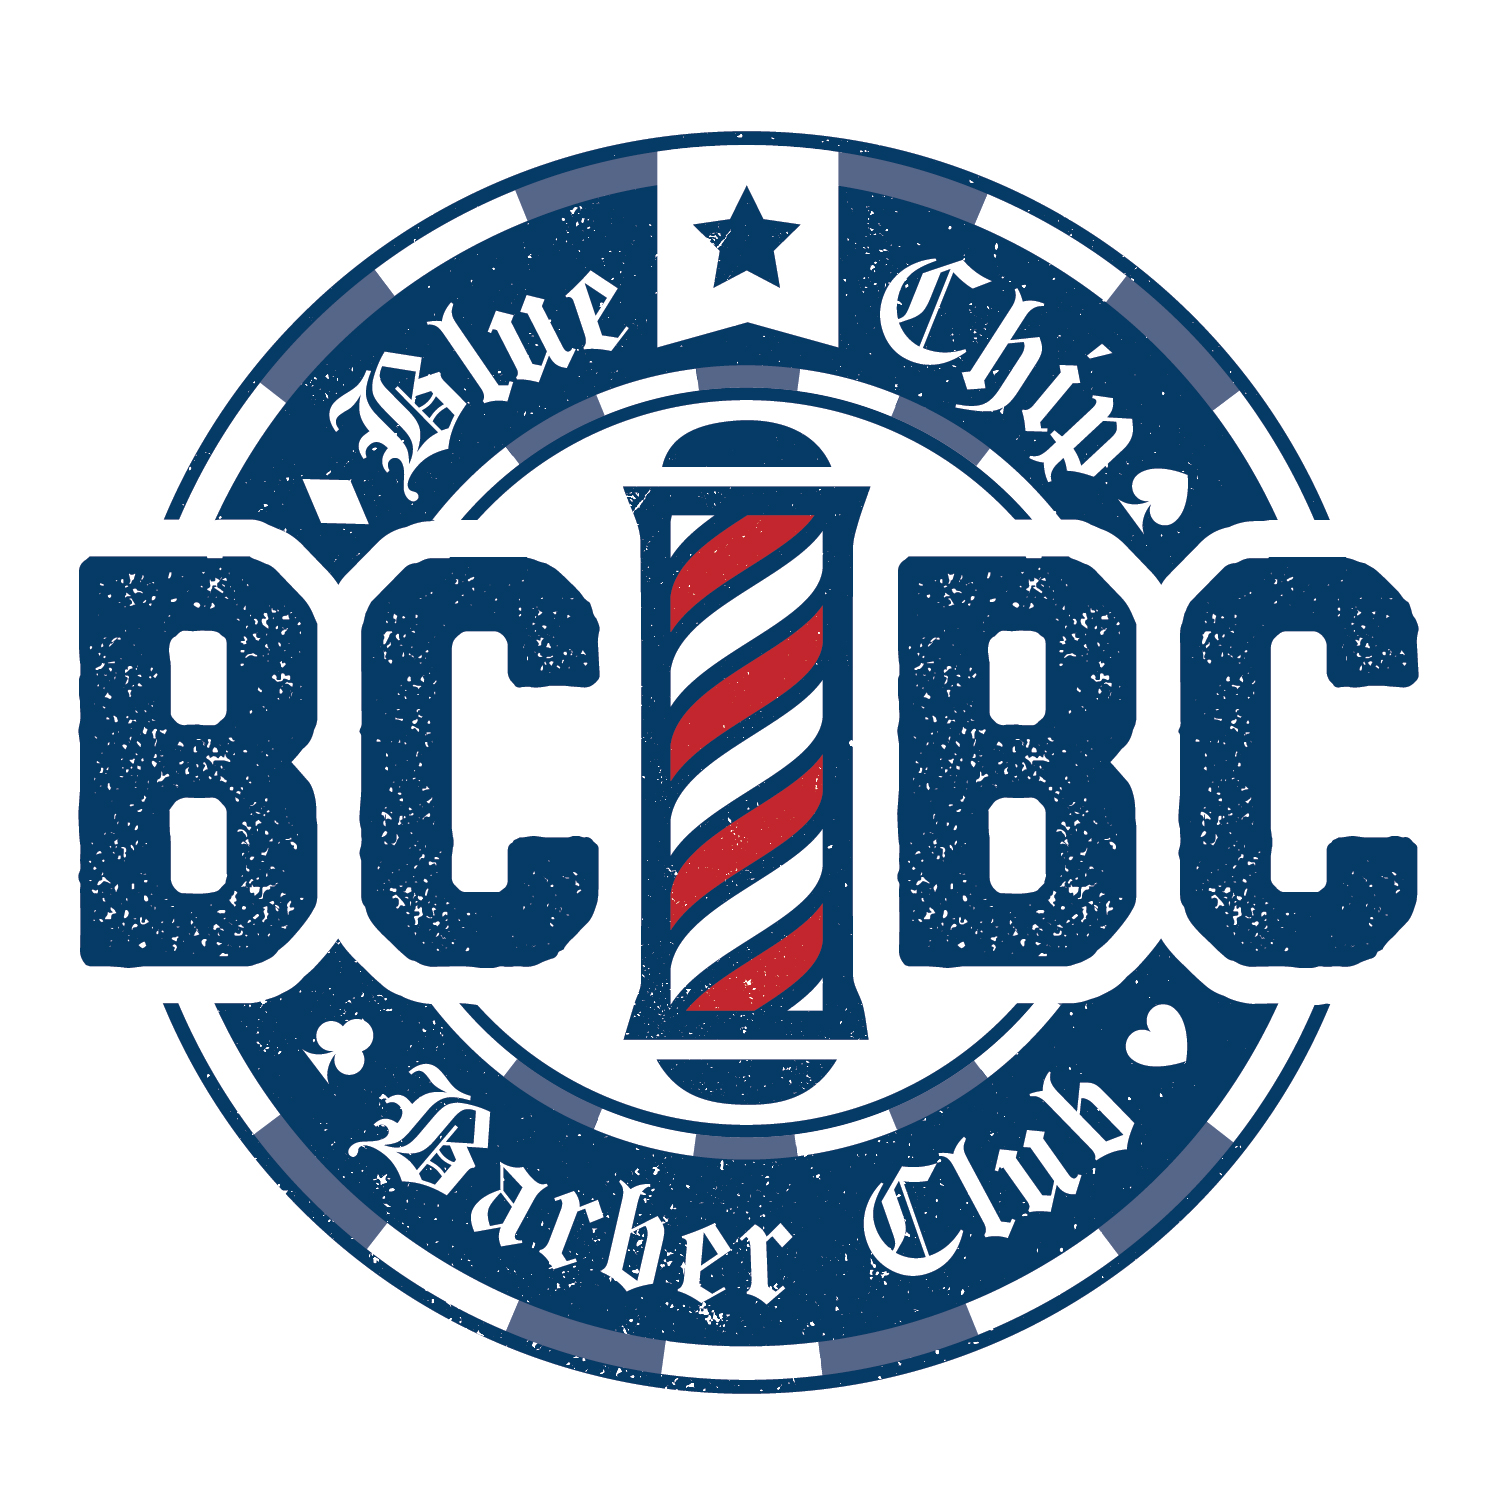 Blue Chip Barber Club